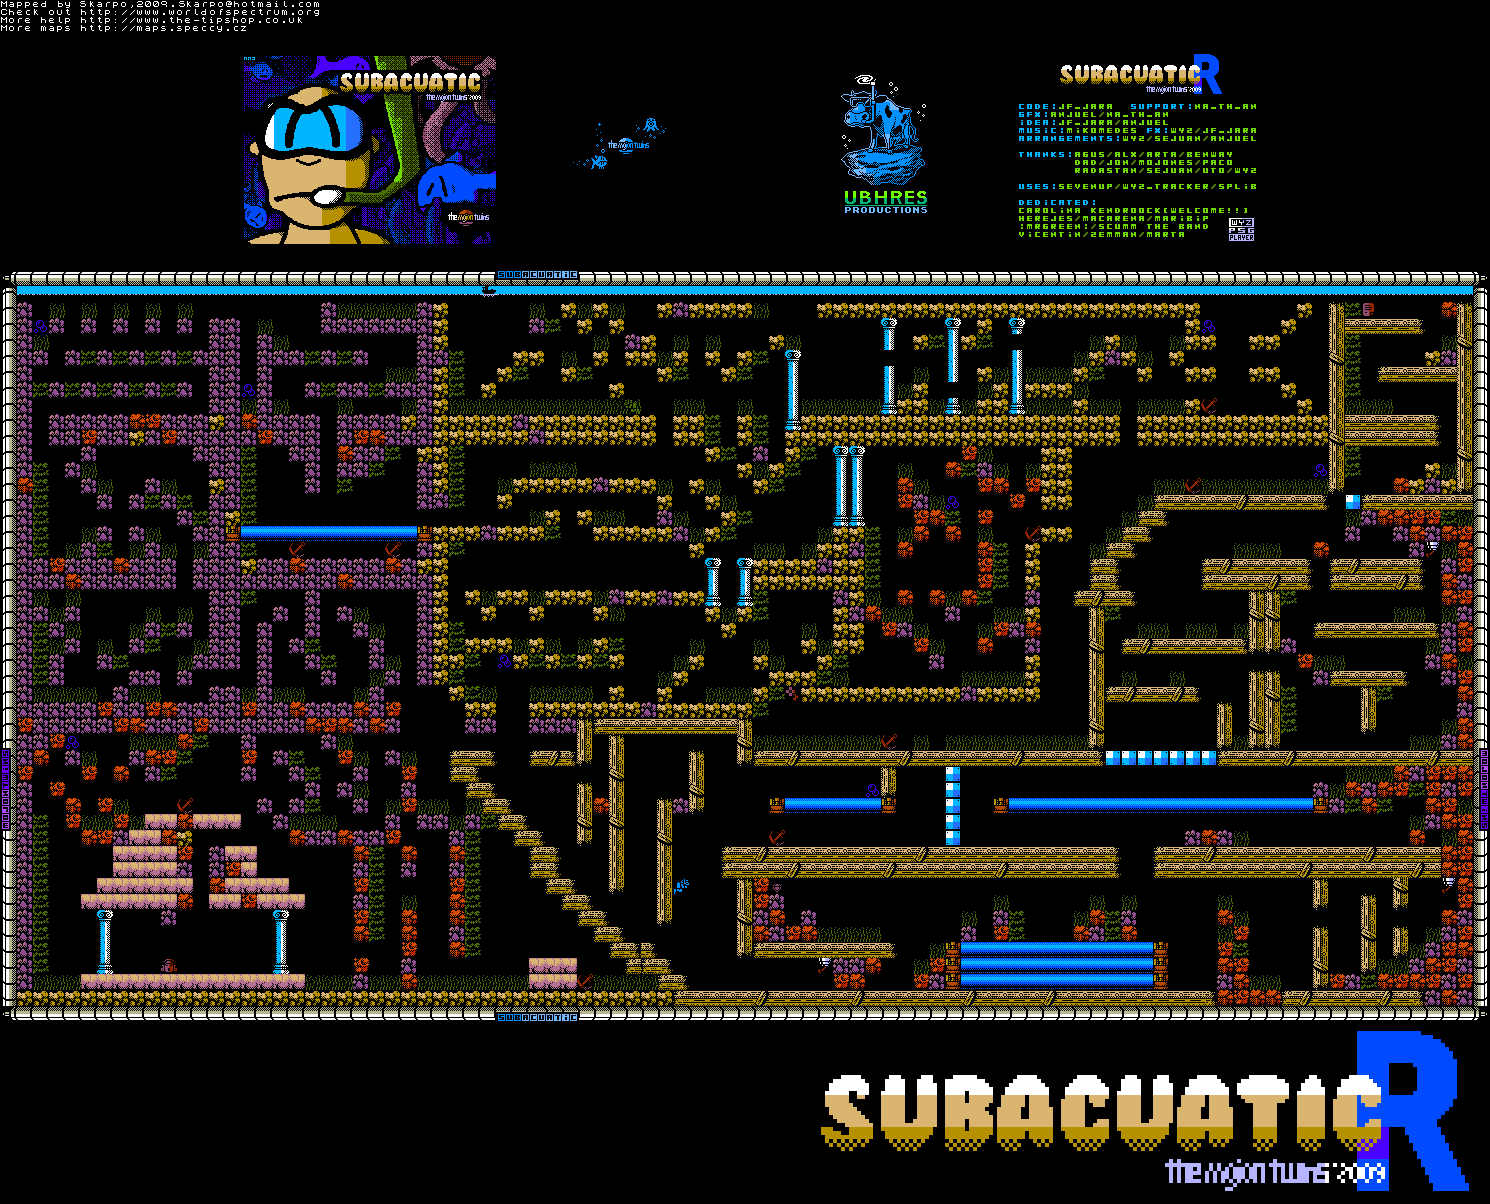 Subacuatic 2 - Reloaded (64 colours) - The Map